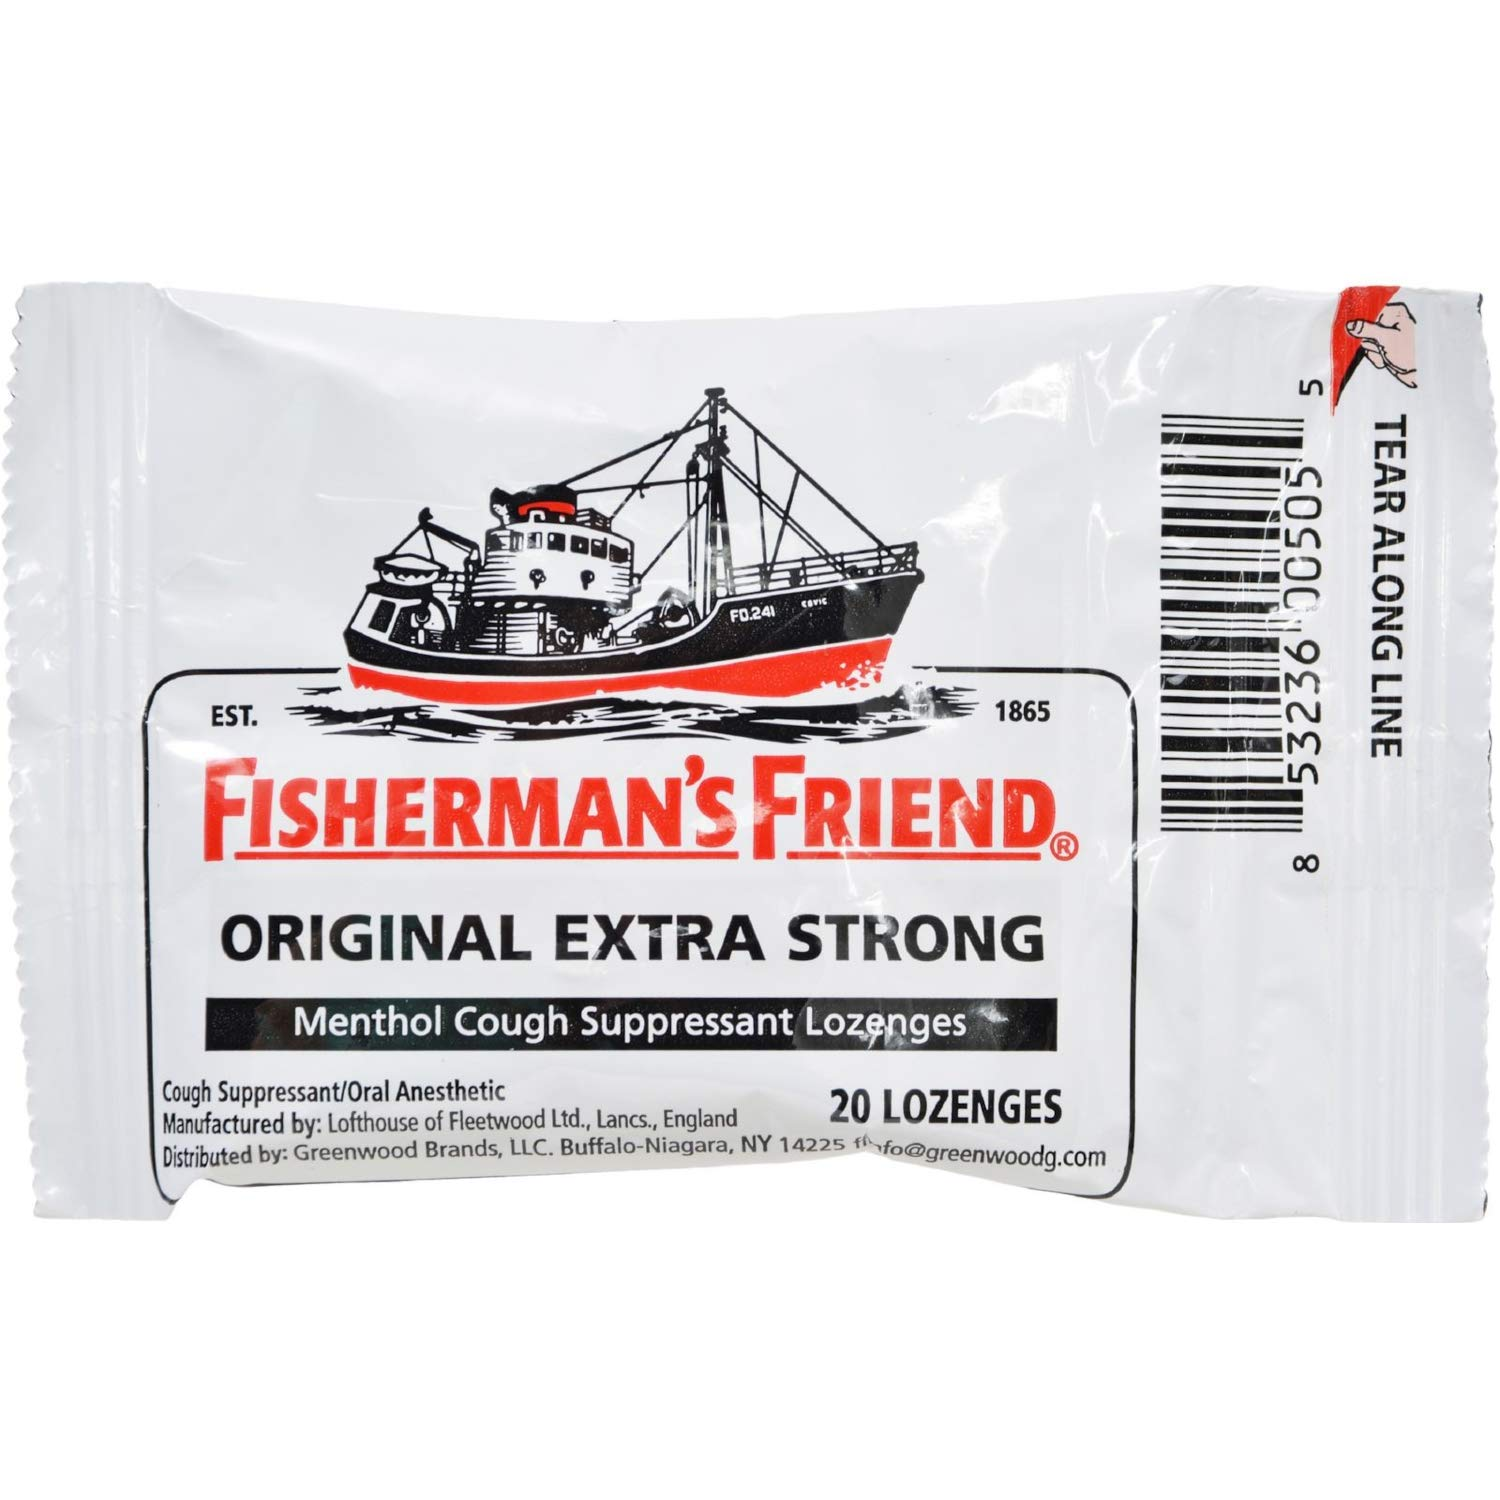 Fisherman's Friend Lozenges Original Extra Strong 20 Each (Pack of 6)